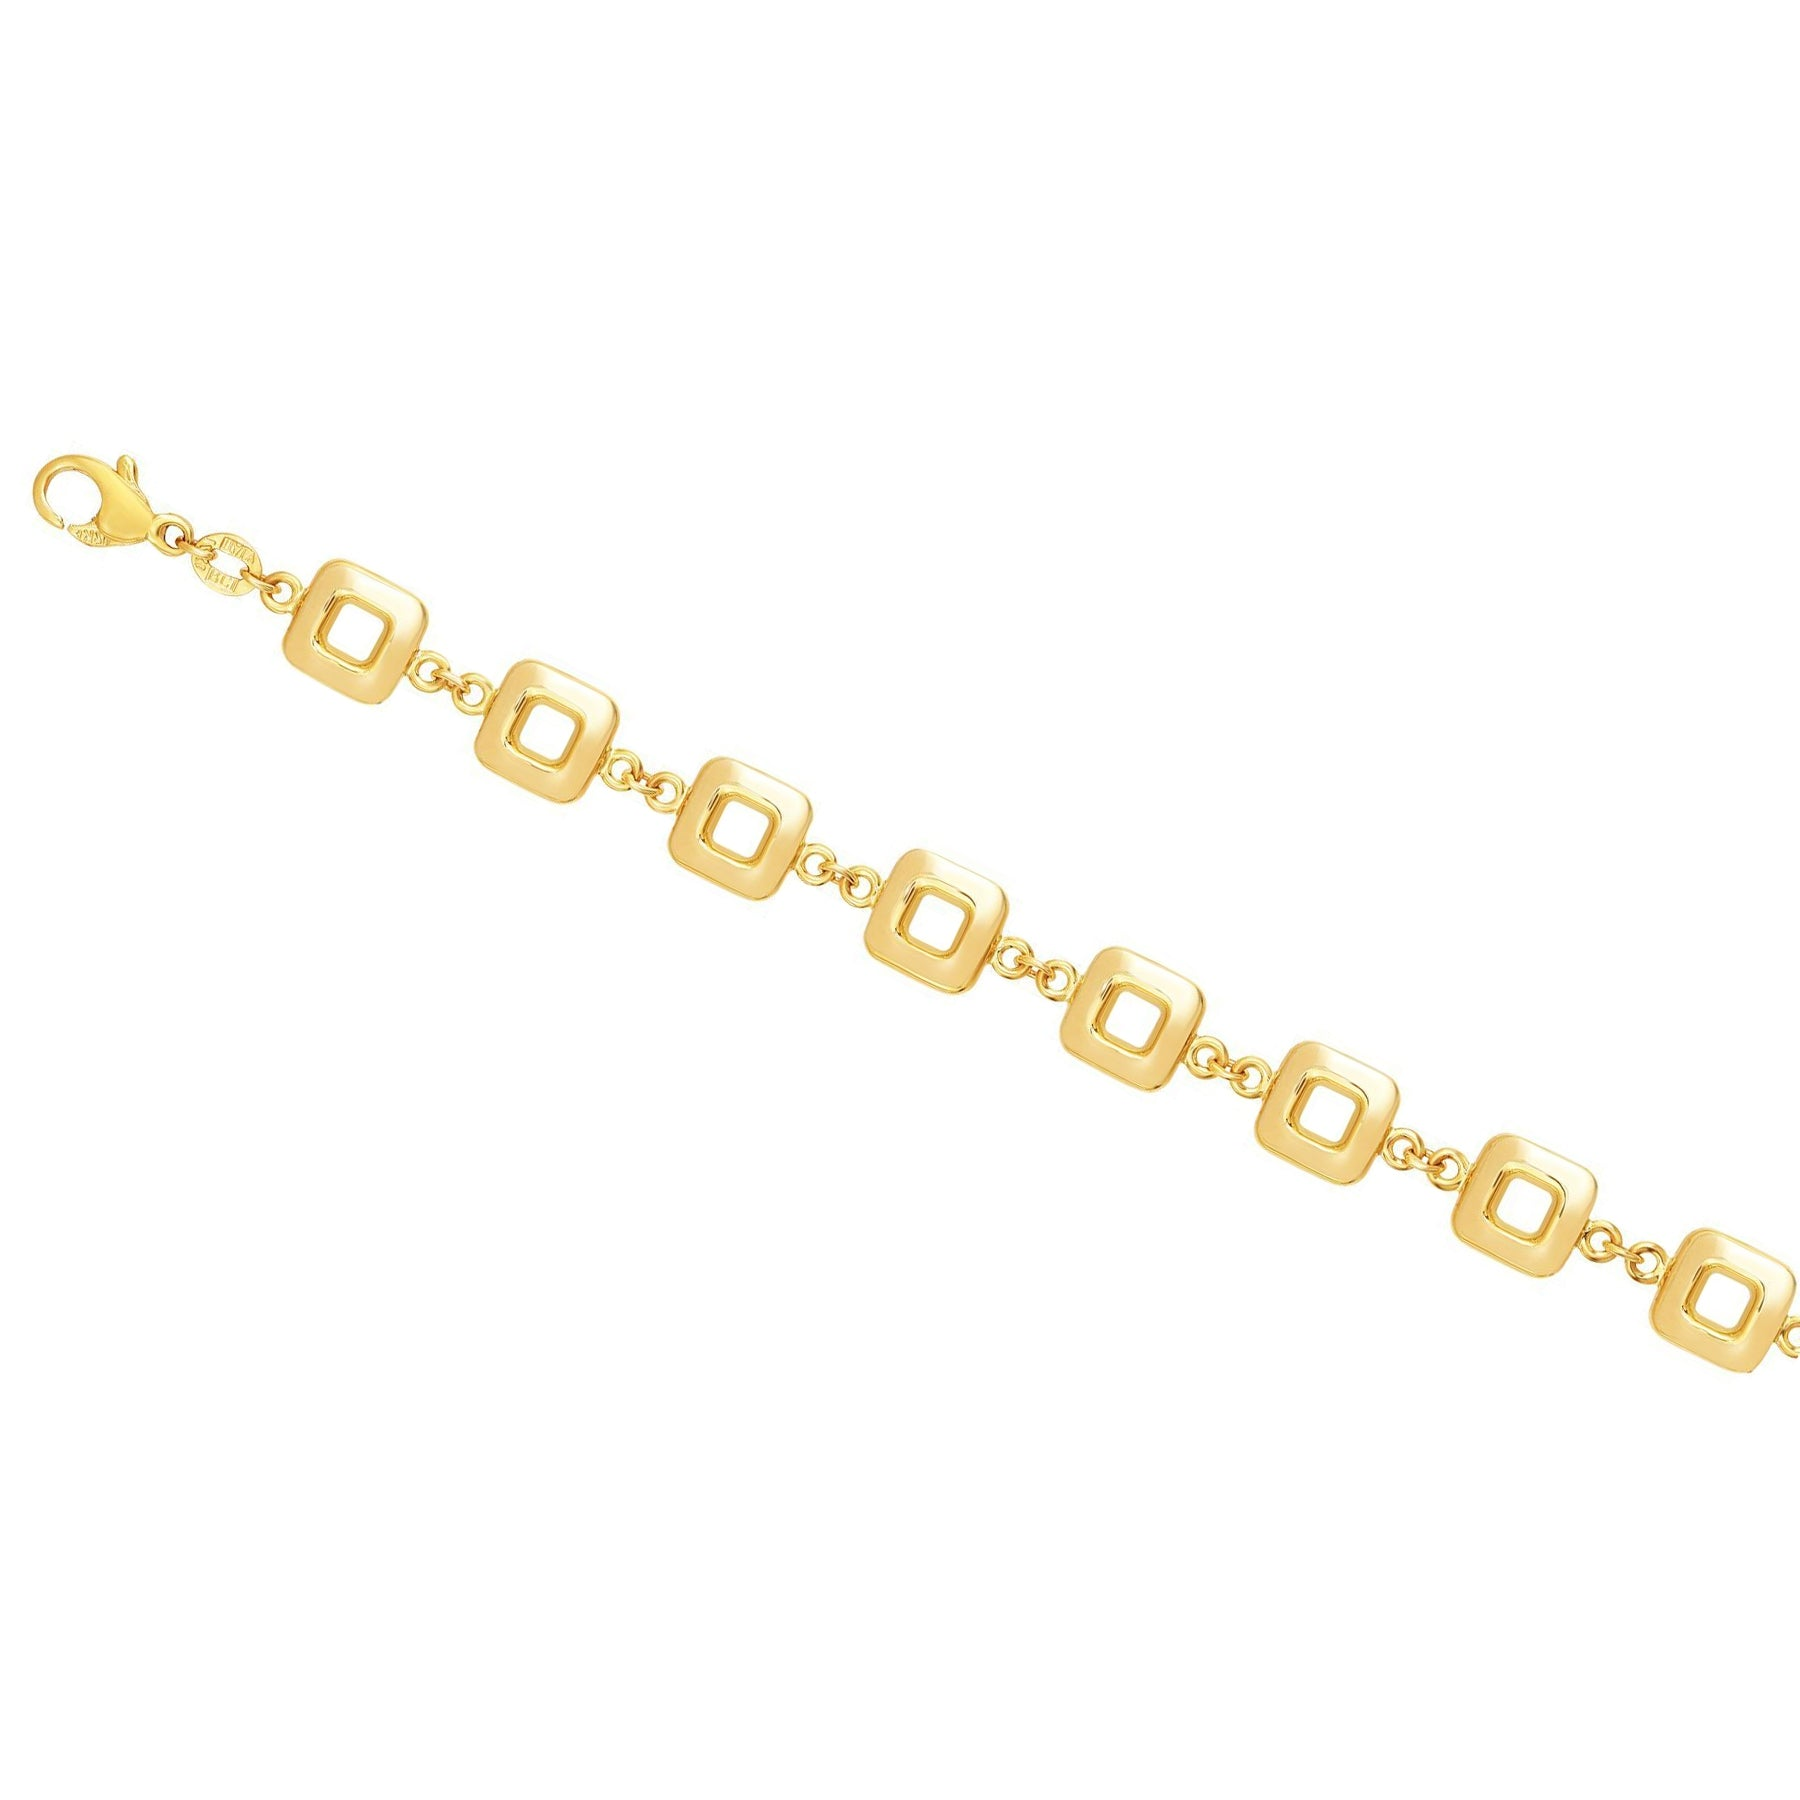 Polished Flexible Square Link Bracelet, 14K Yellow Gold